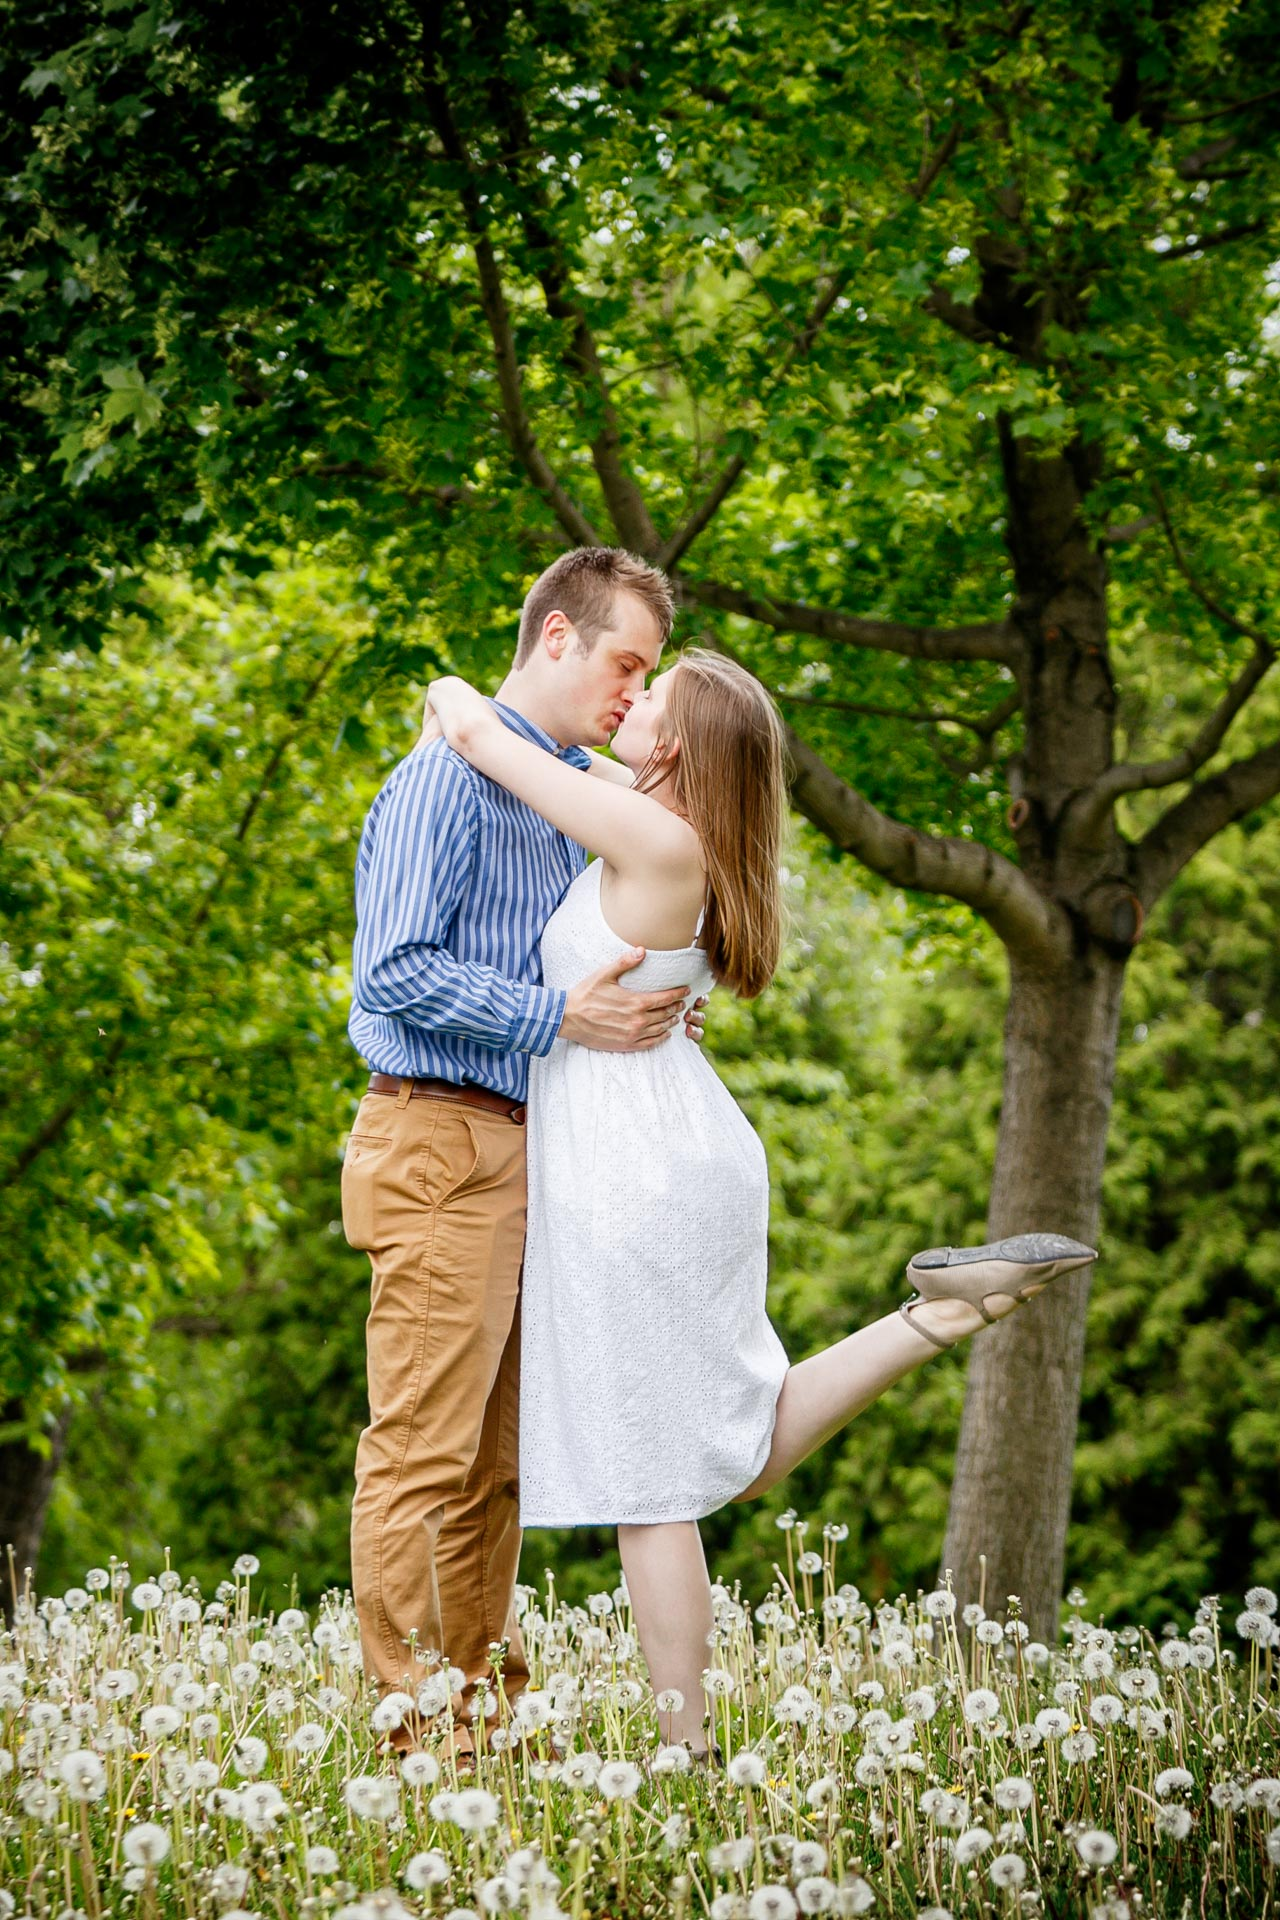 engagement-photos-voyageur-park-de-pere-wisconsin-wi-adam-shea-photography-adam-shea-photography-green-bay-appleton-neenah-photographer-14.jpg